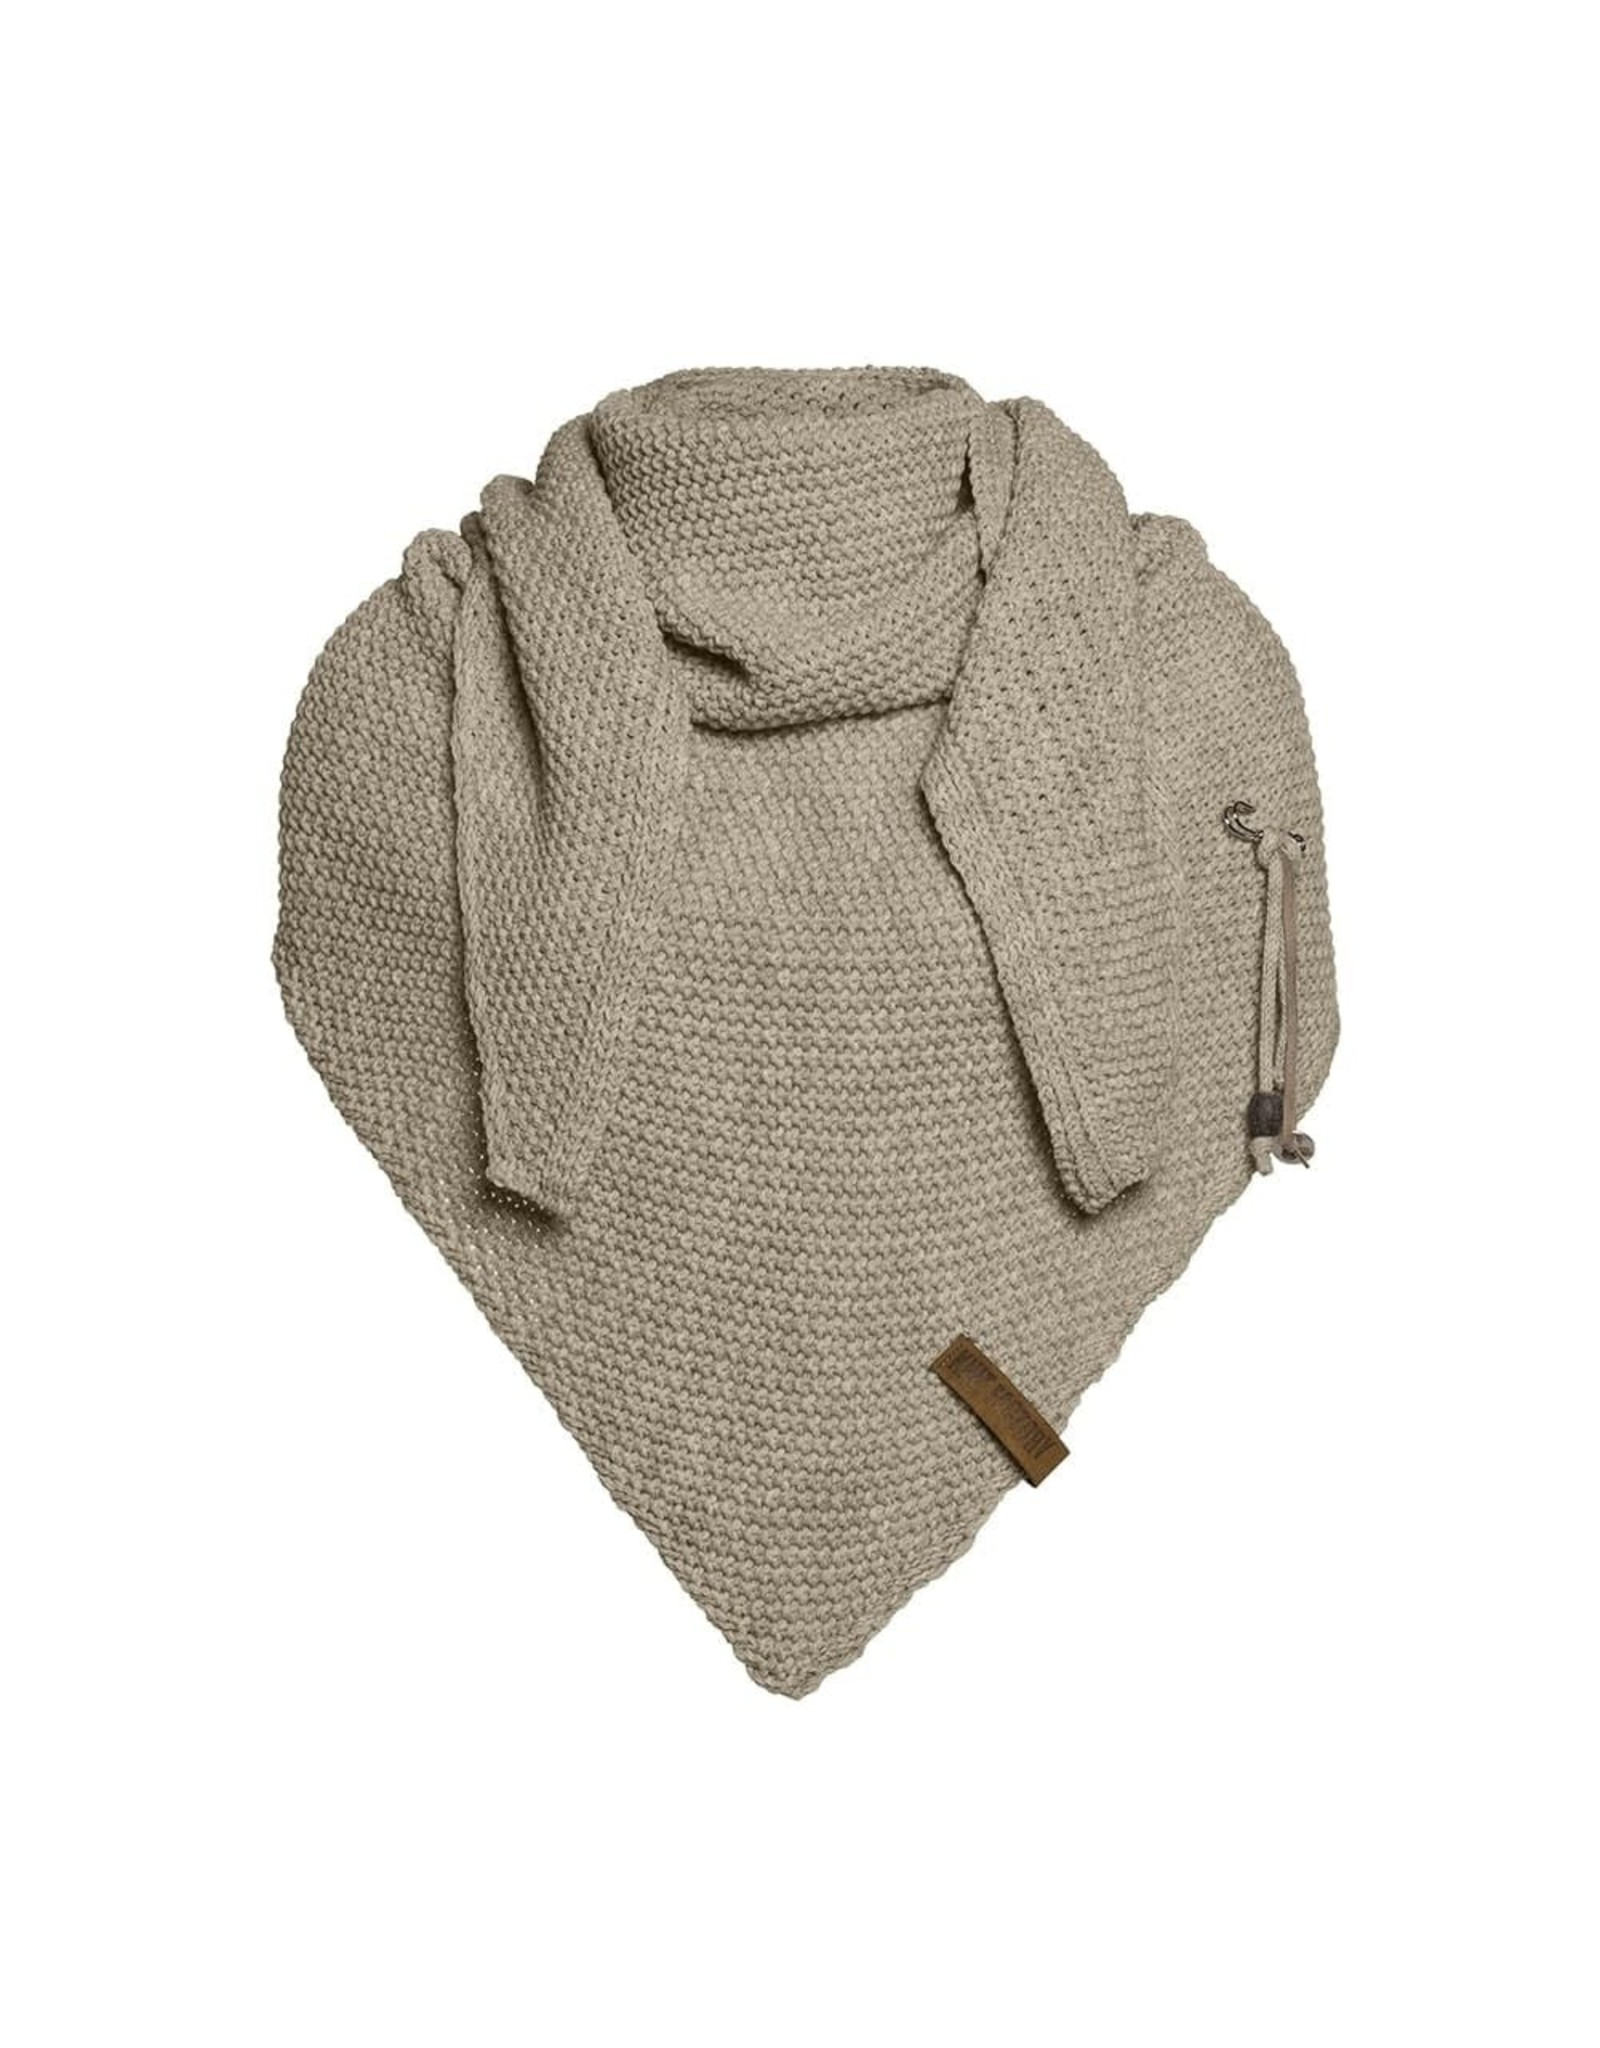 Knit Factory Knit Factory 1206033 Coco Triangle Shawl 190x85 Olive